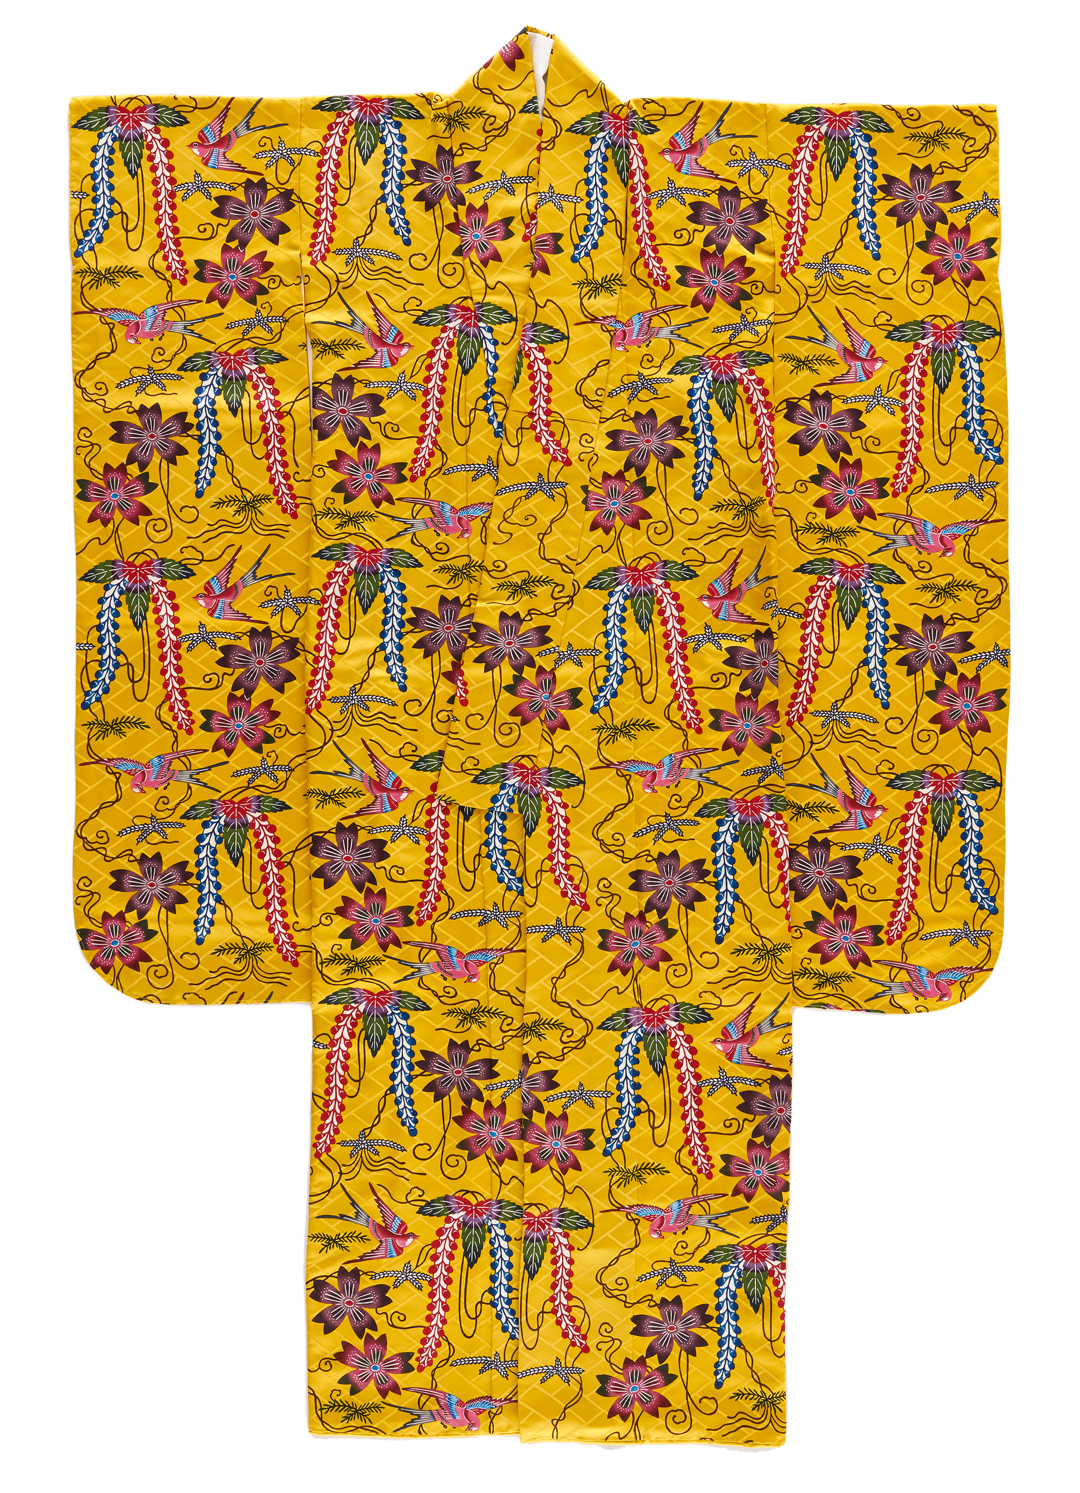 Bright yellow robe with floral pattern